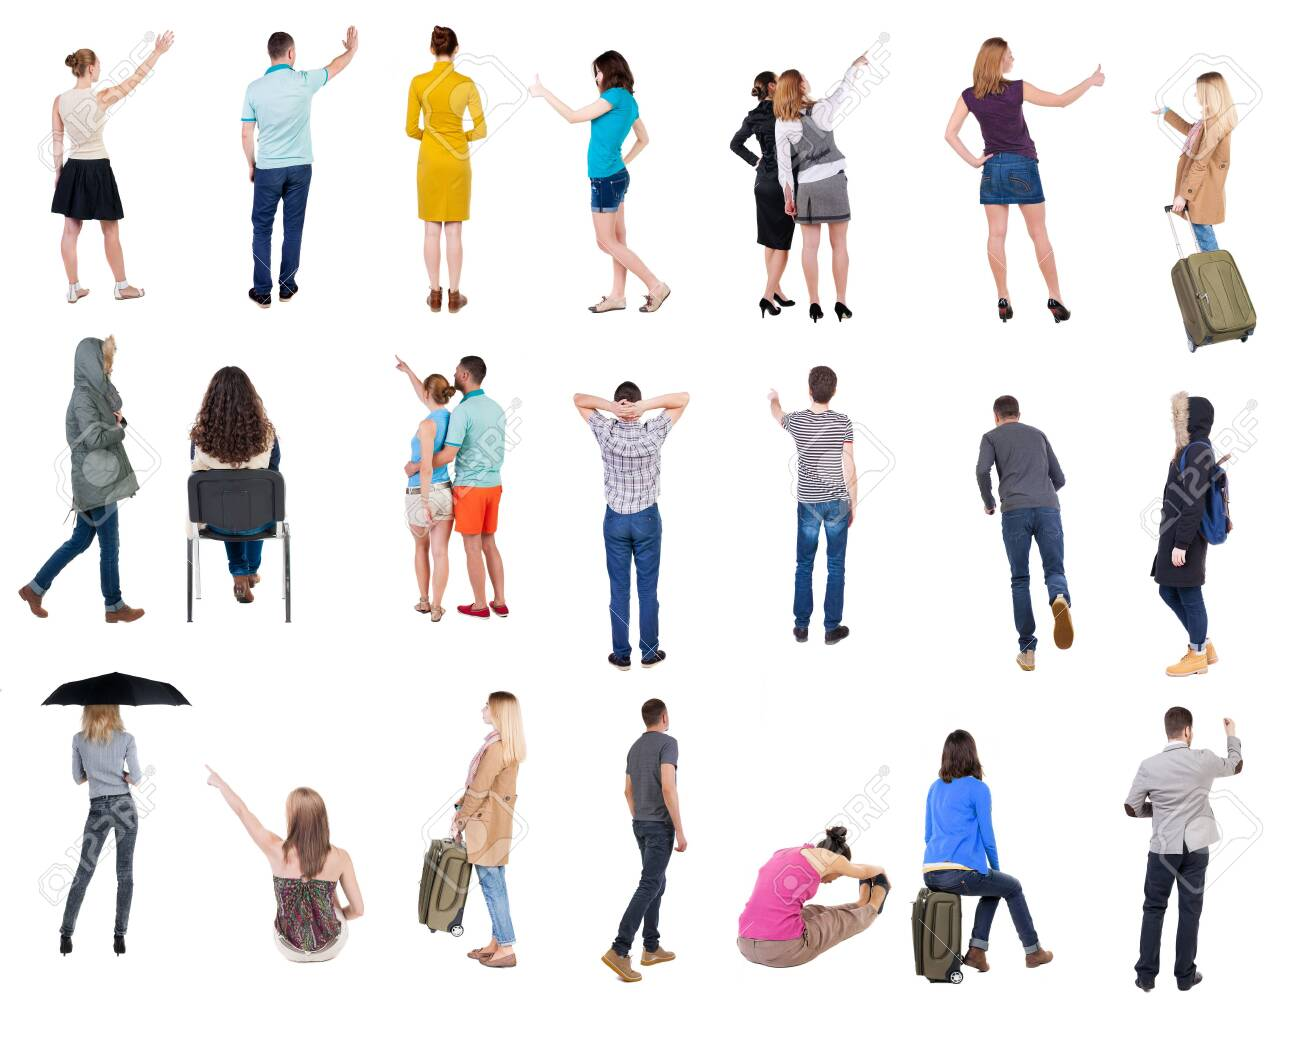 Collection Back view people. Rear view people set. backside view of person. Isolated over white background. many people standing with their backs. - 141049018